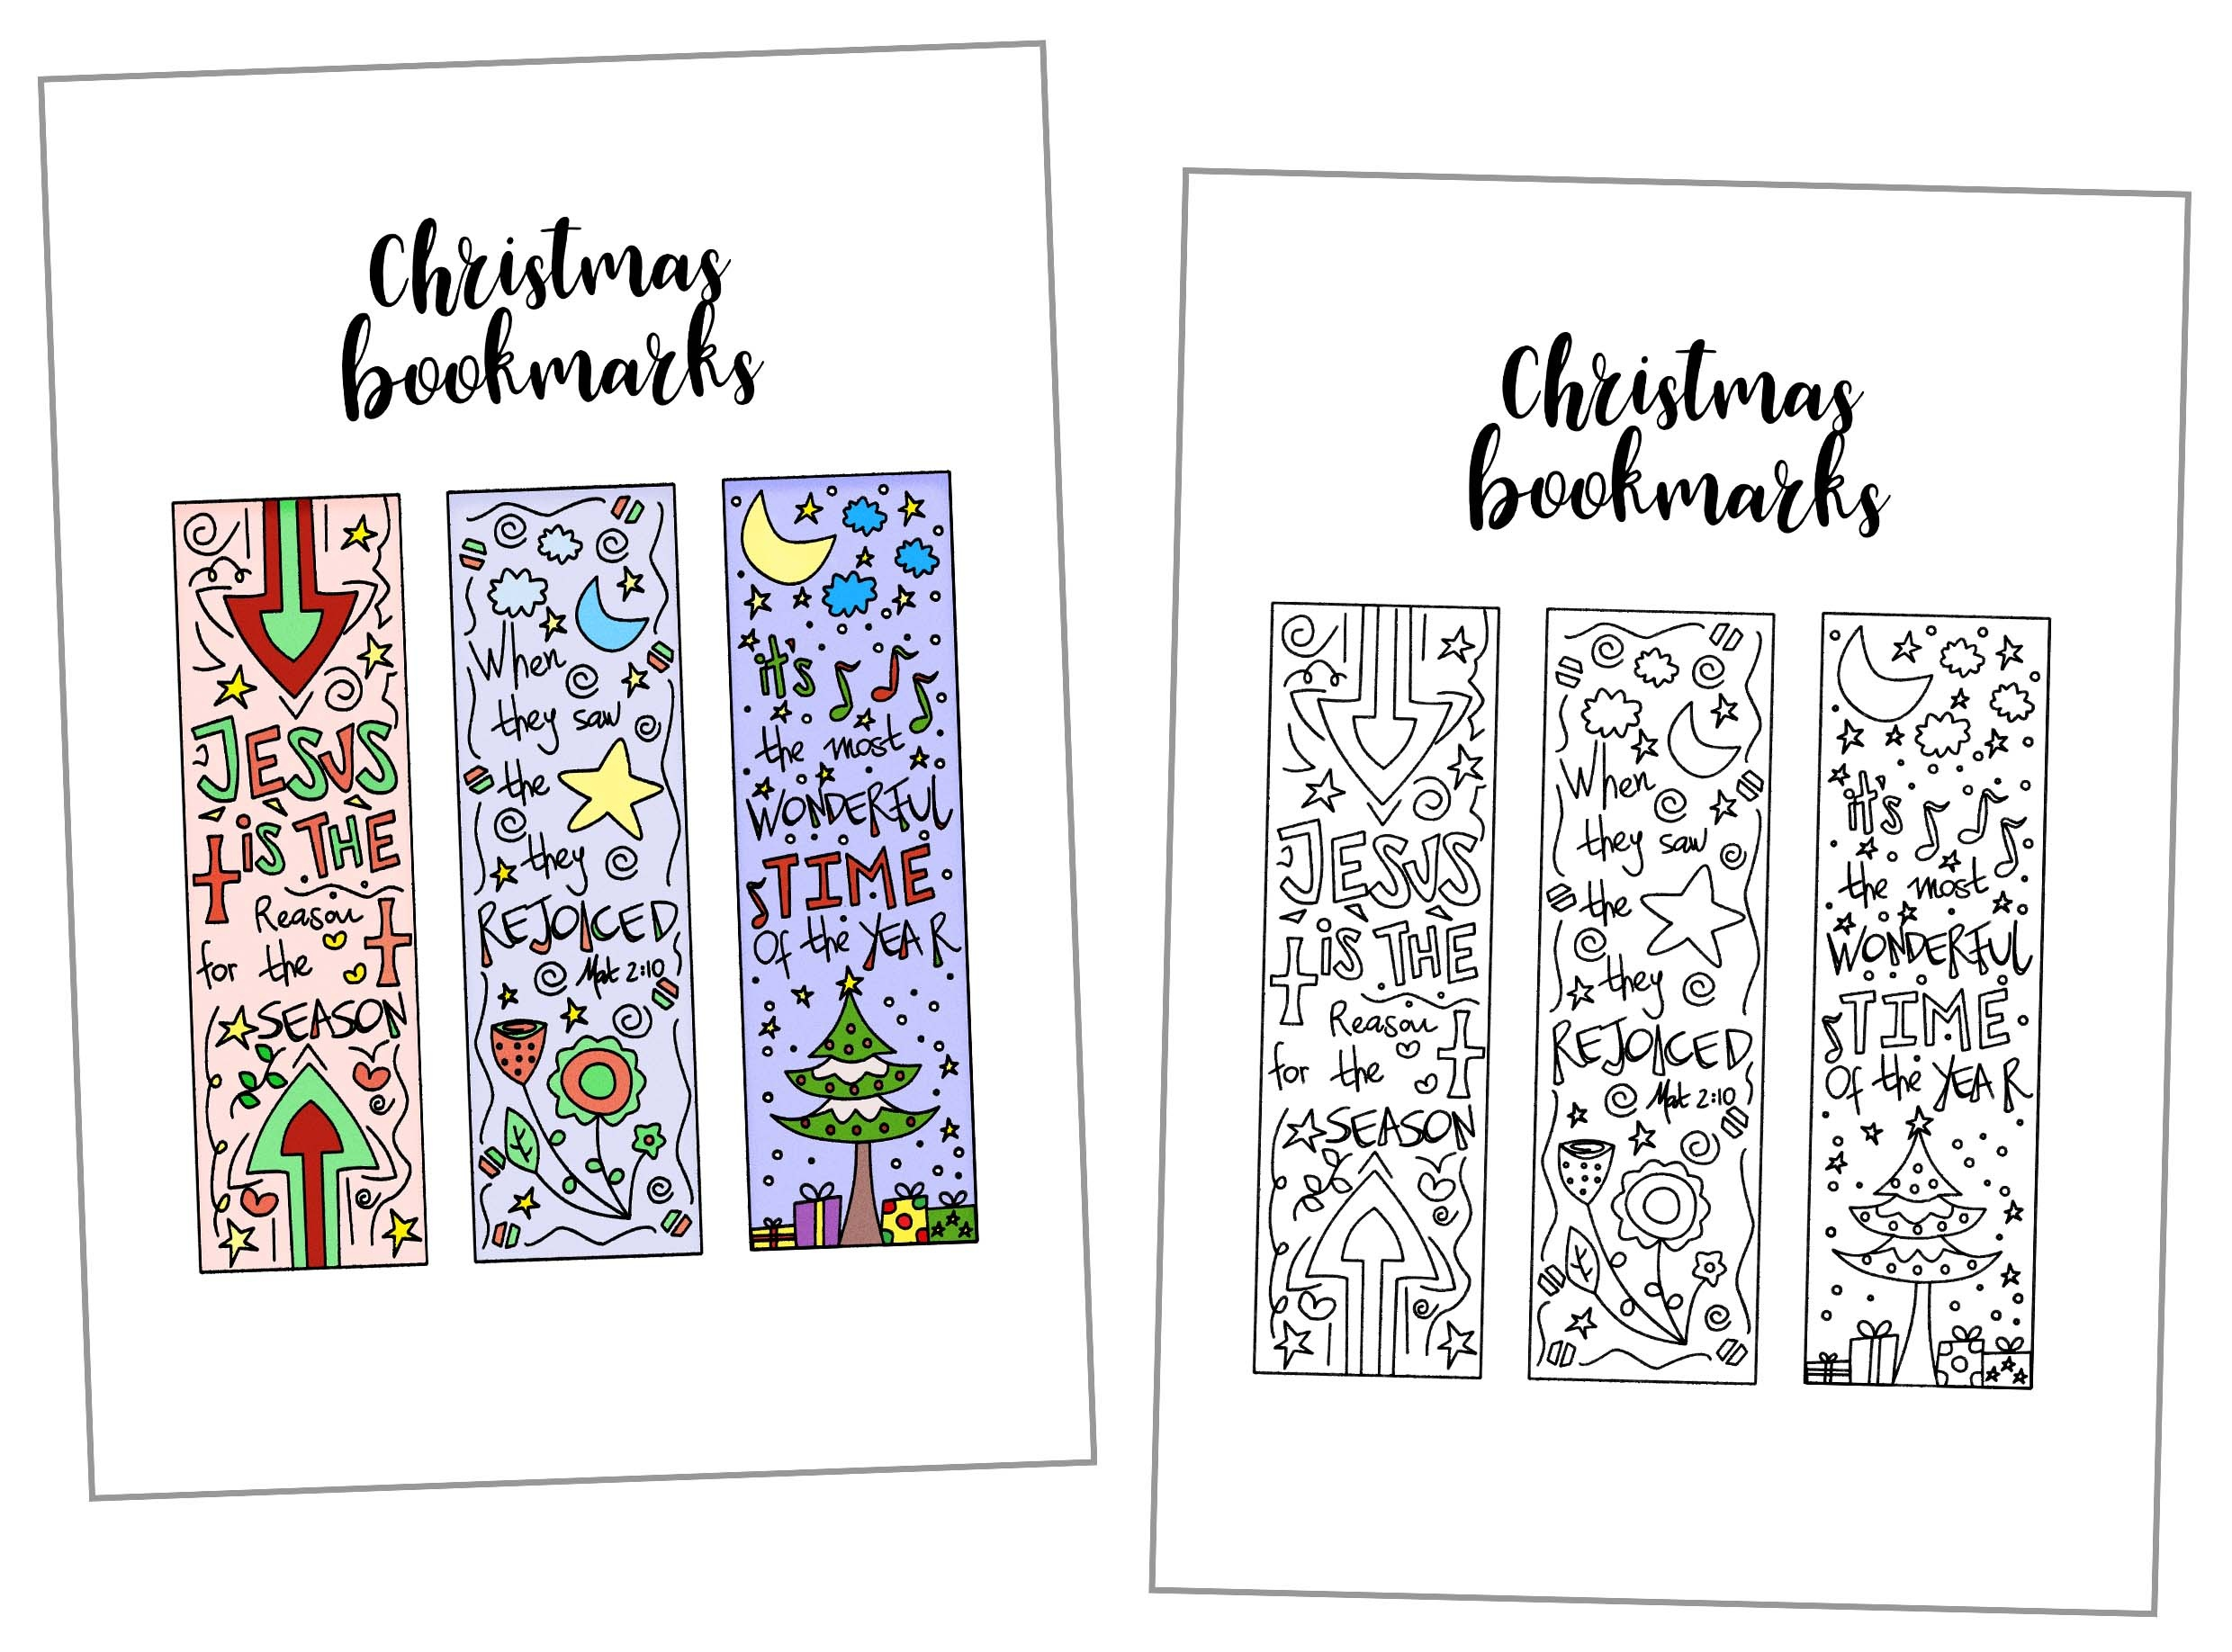 Coloring Christmas Bookmarks Free Printable - Free Printable Christmas Bookmarks To Color